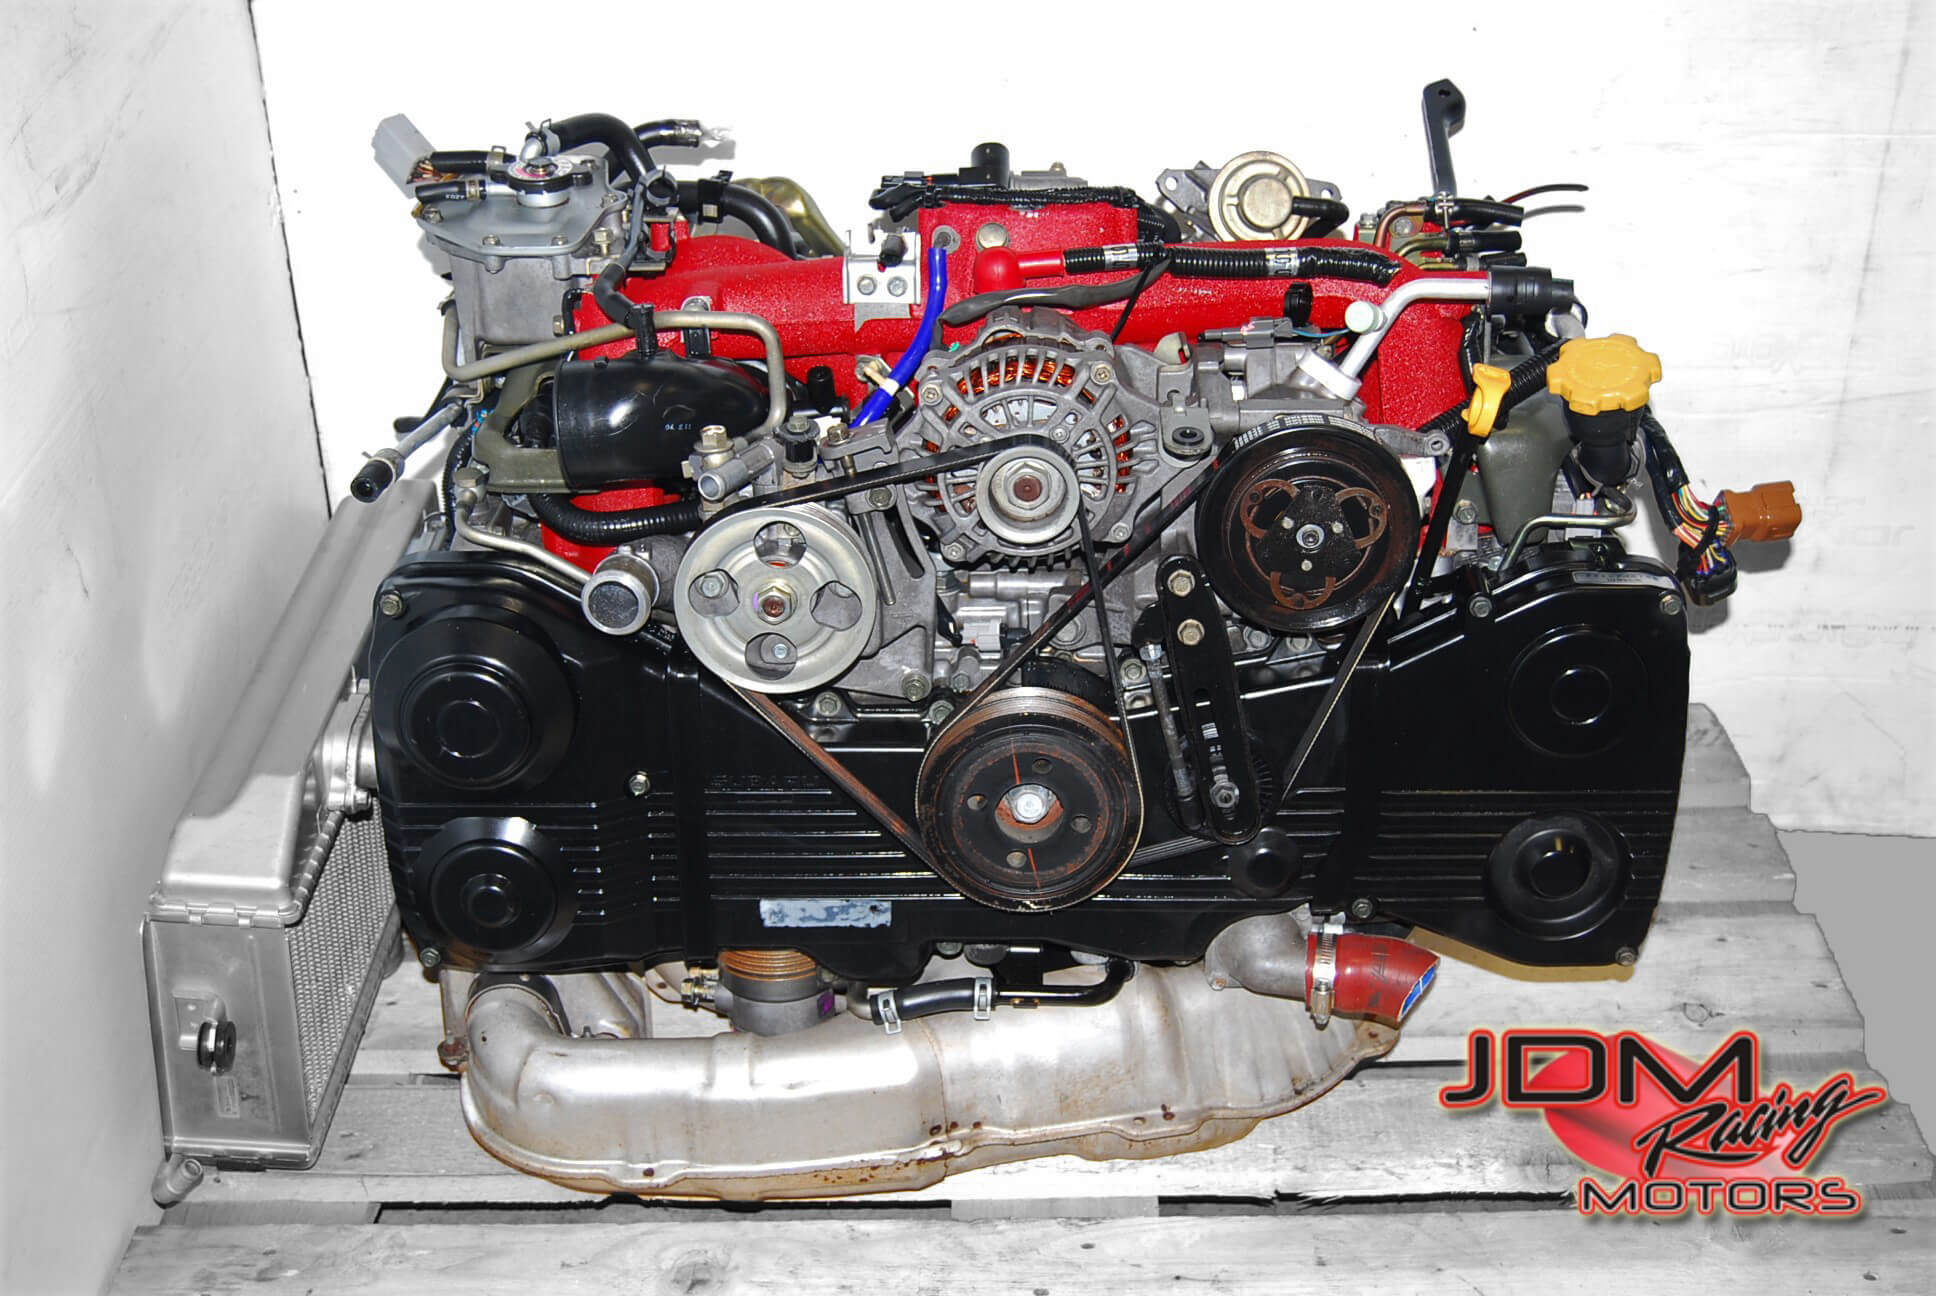 subaru jdm engines parts jdm racing motors rh jdmracingmotors com Subaru  Impreza Engine Diagram 2000 Subaru Forester Engine Diagram